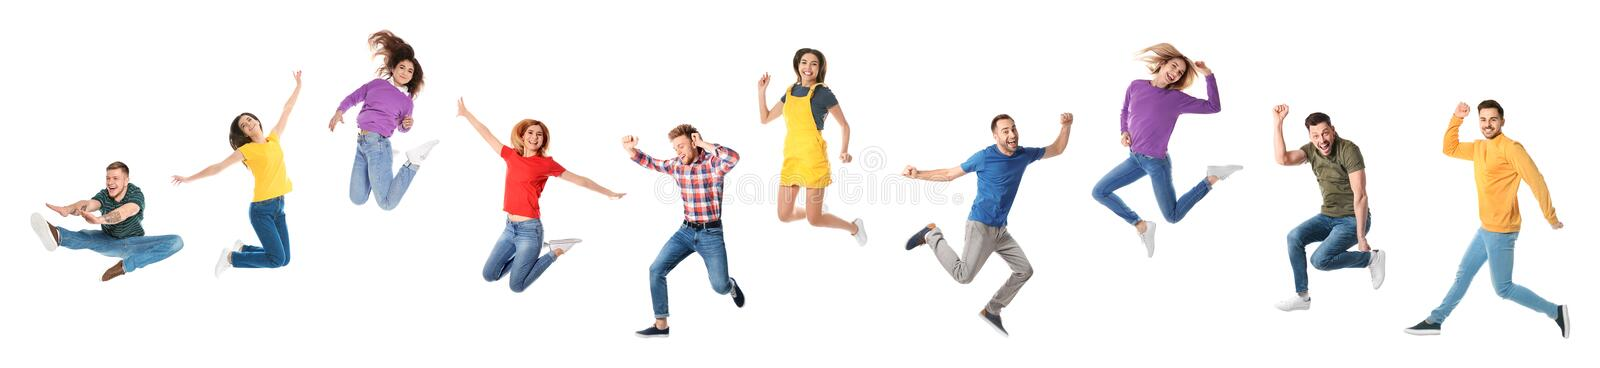 Collage of emotional people jumping on white background. Banner design stock photo